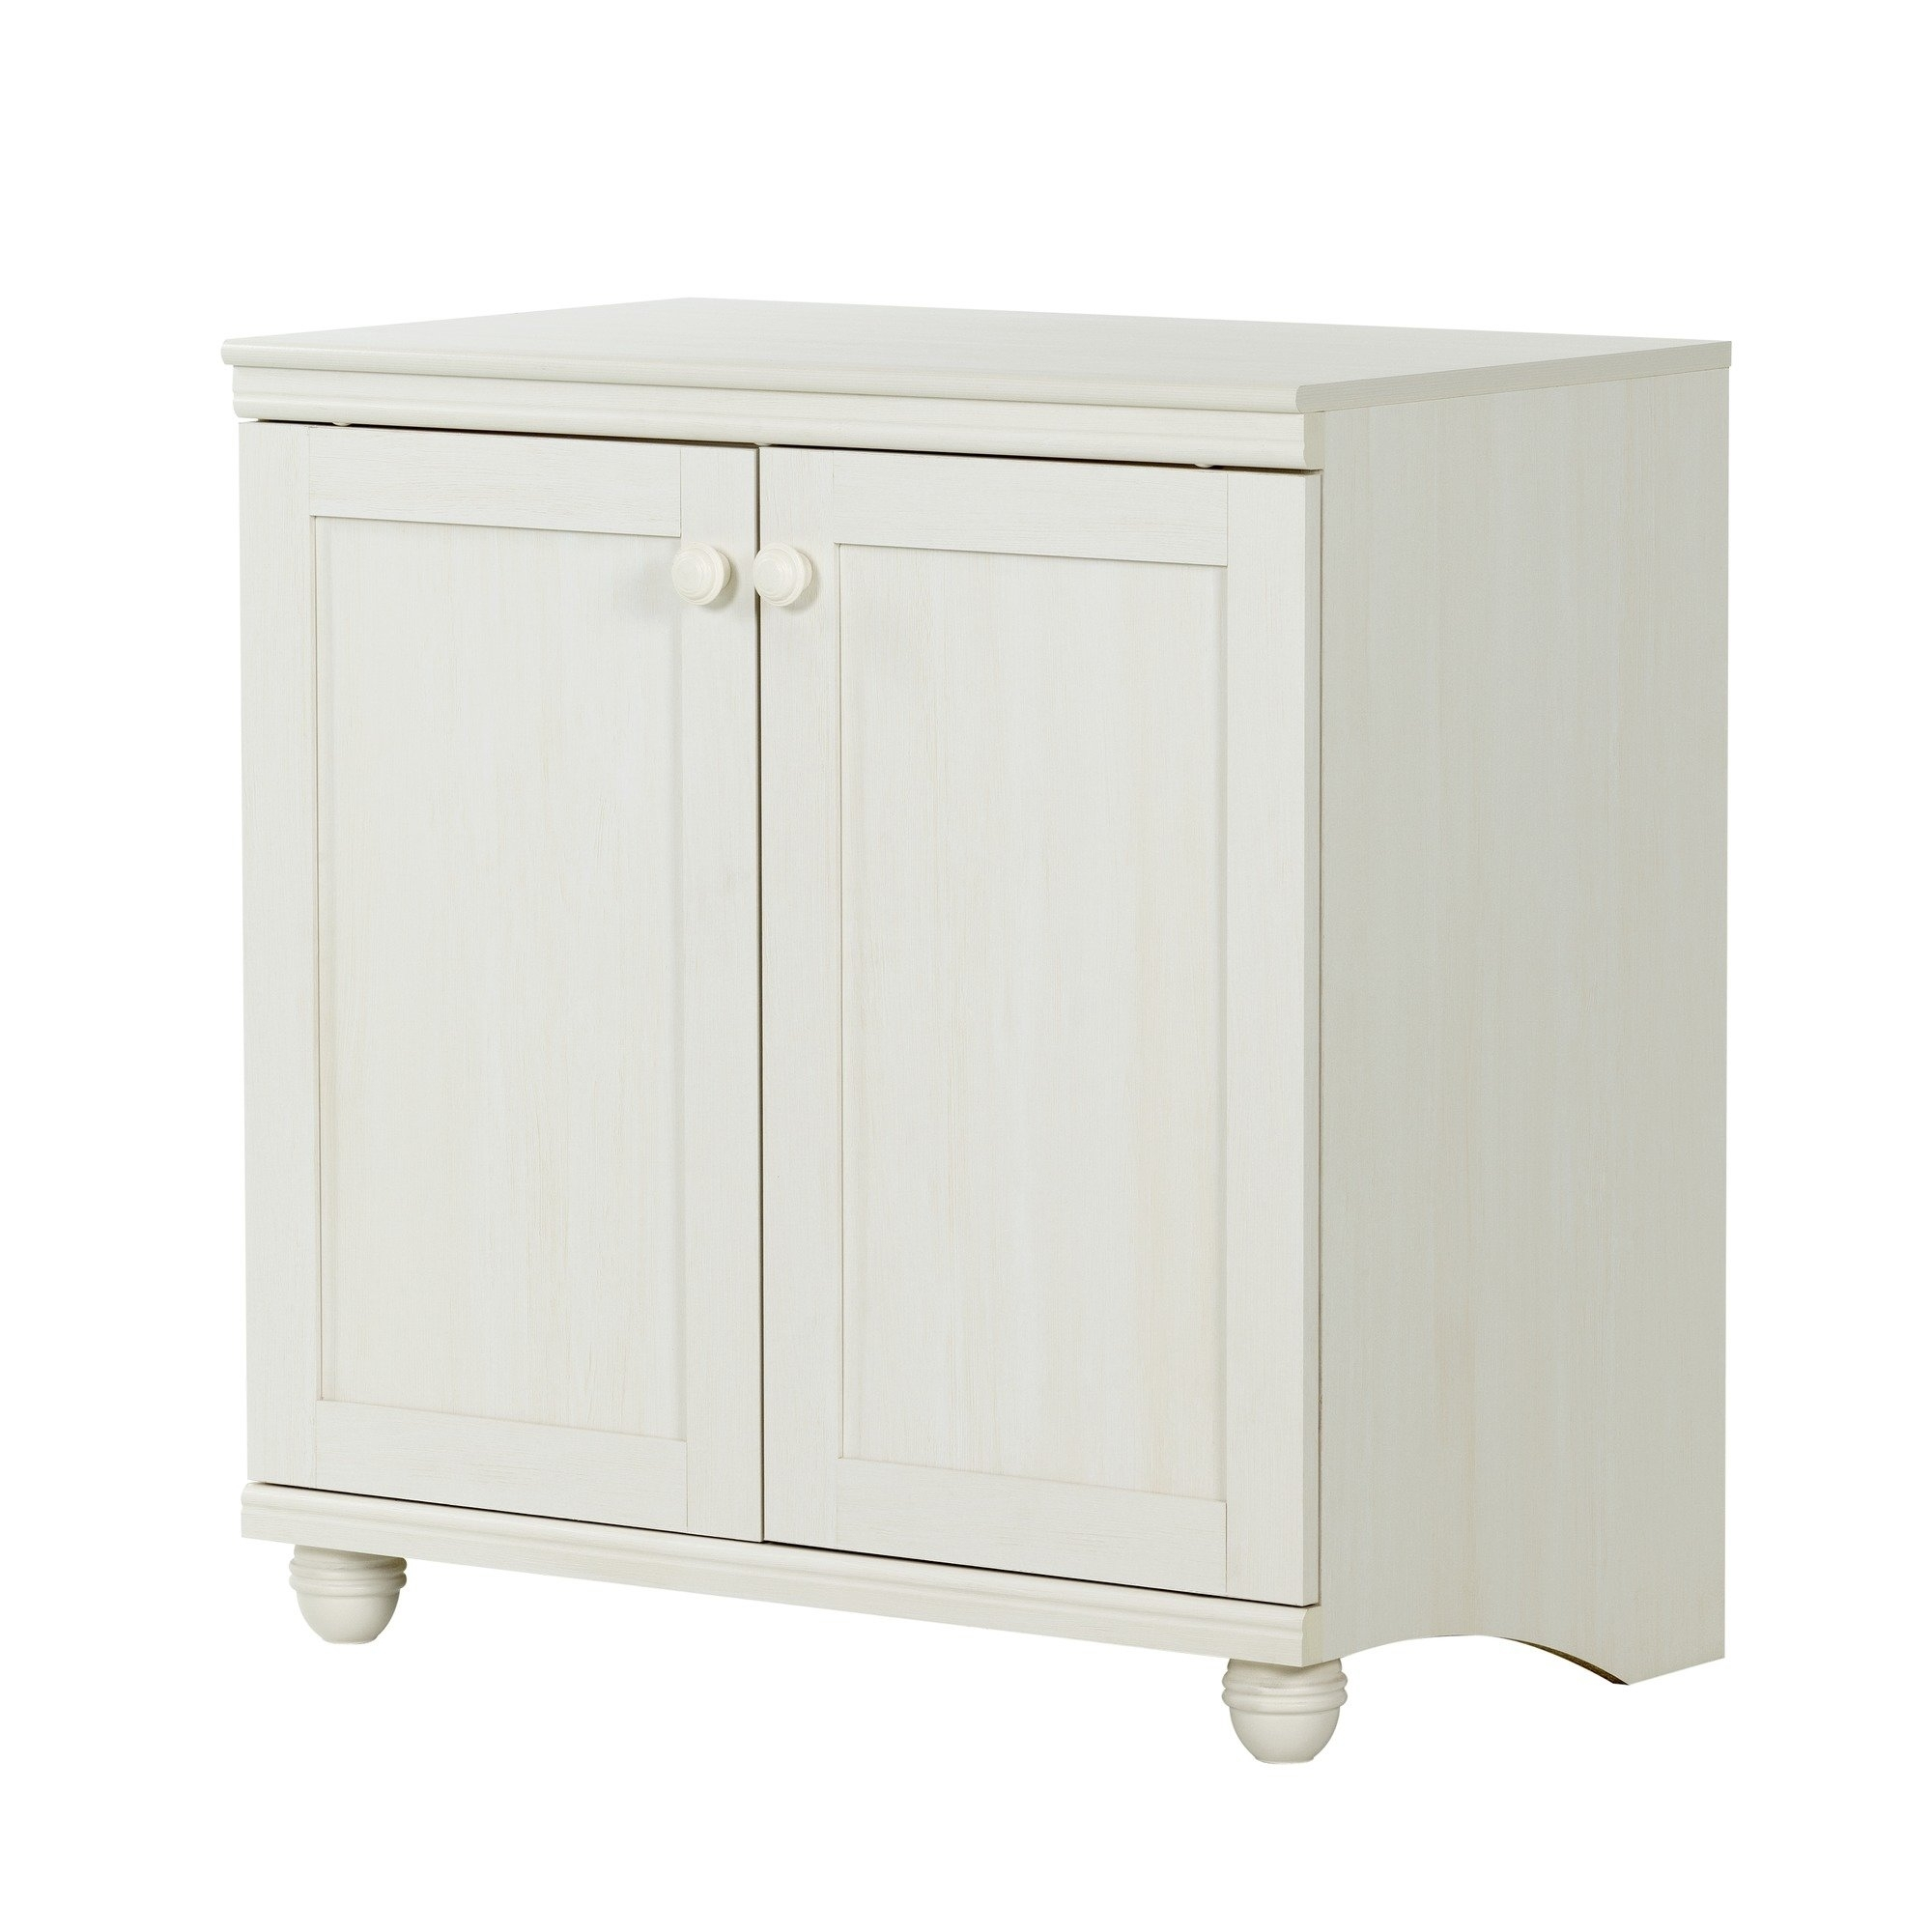 Whitewash Cabinet | Wayfair In 4 Door 3 Drawer White Wash Sideboards (View 15 of 30)